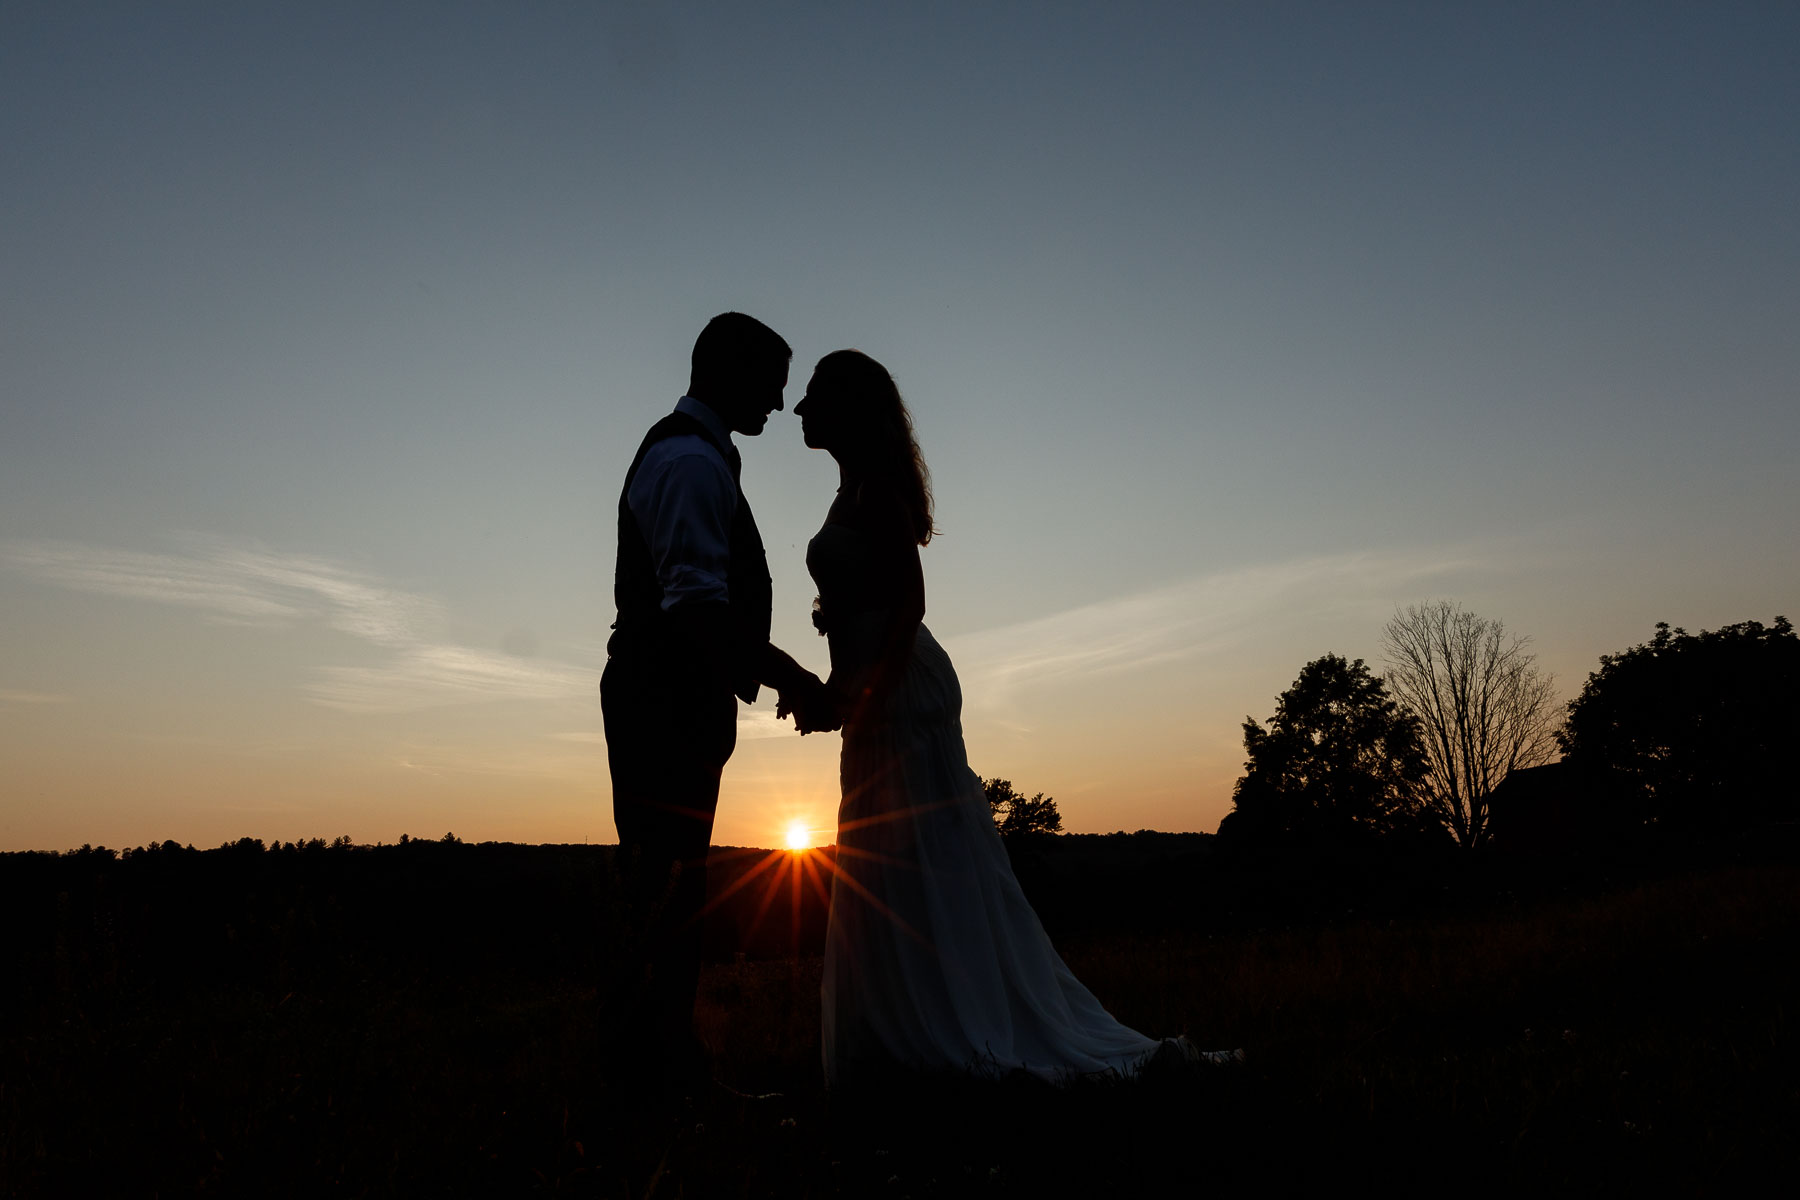 Salem Cross inn Wedding bride and groom sunset photo